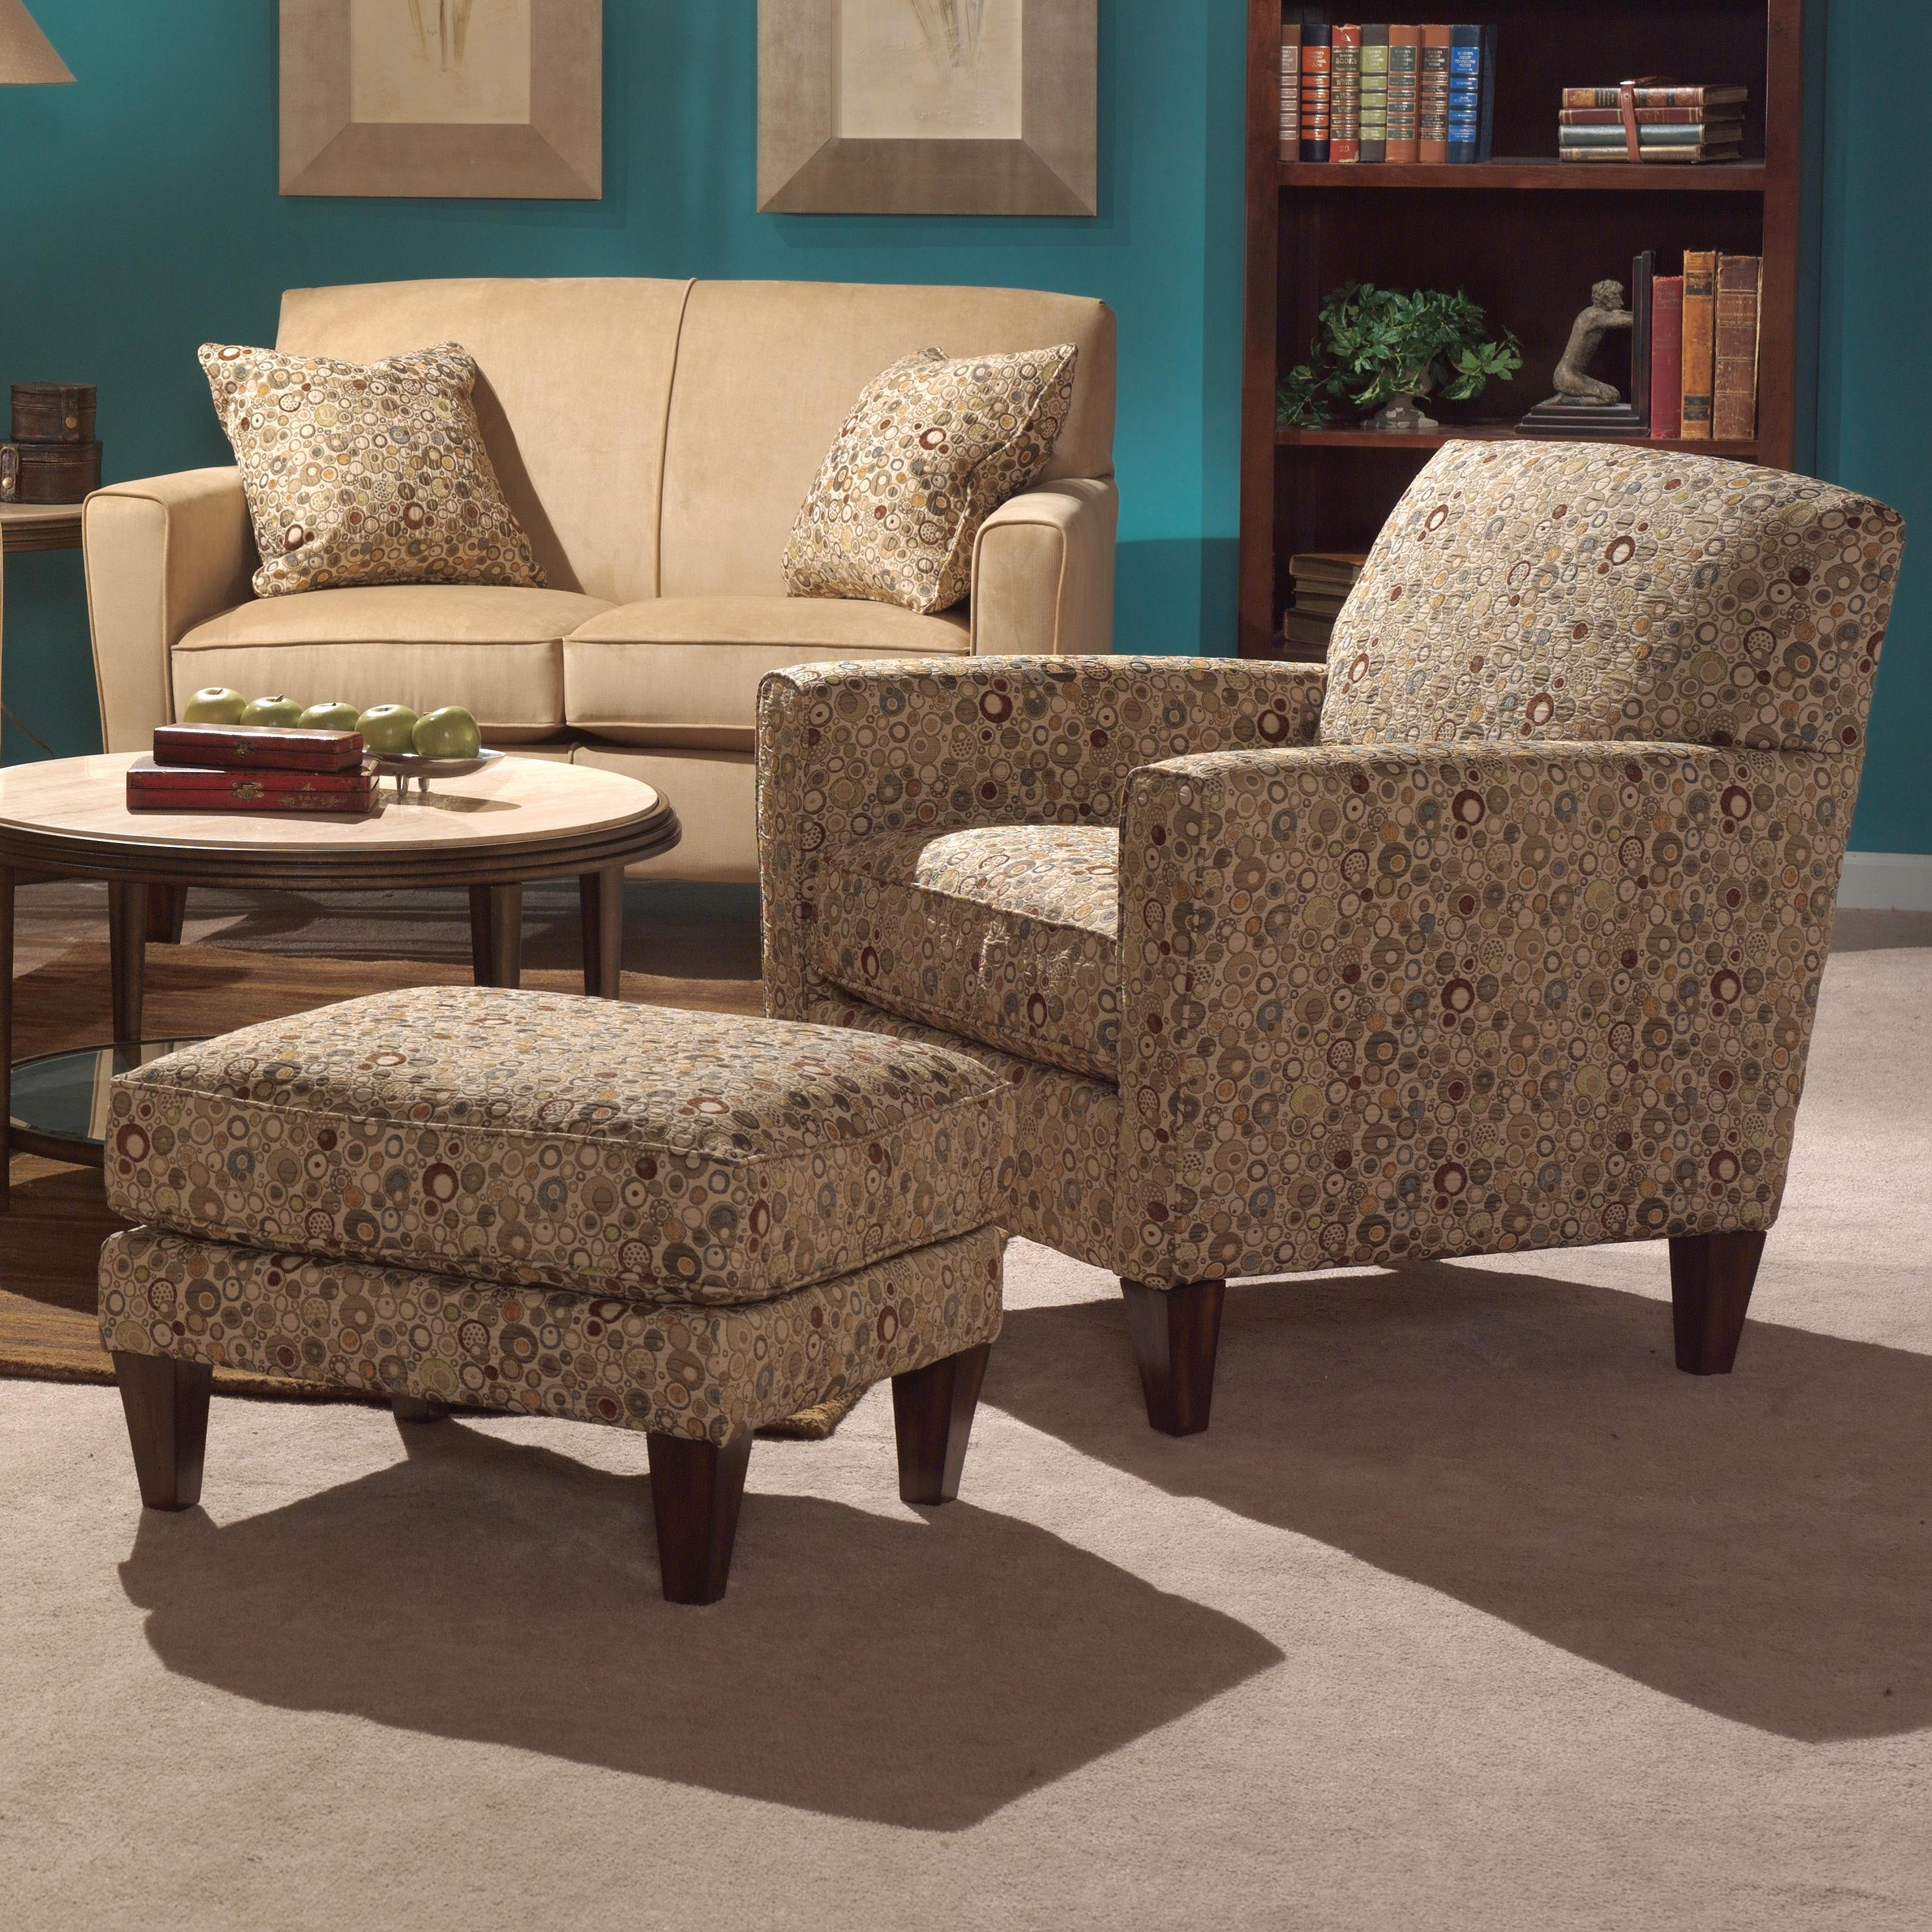 Chair And Ottoman Set Digby Chair And Ottoman Set By Flexsteel At Hudson S Furniture